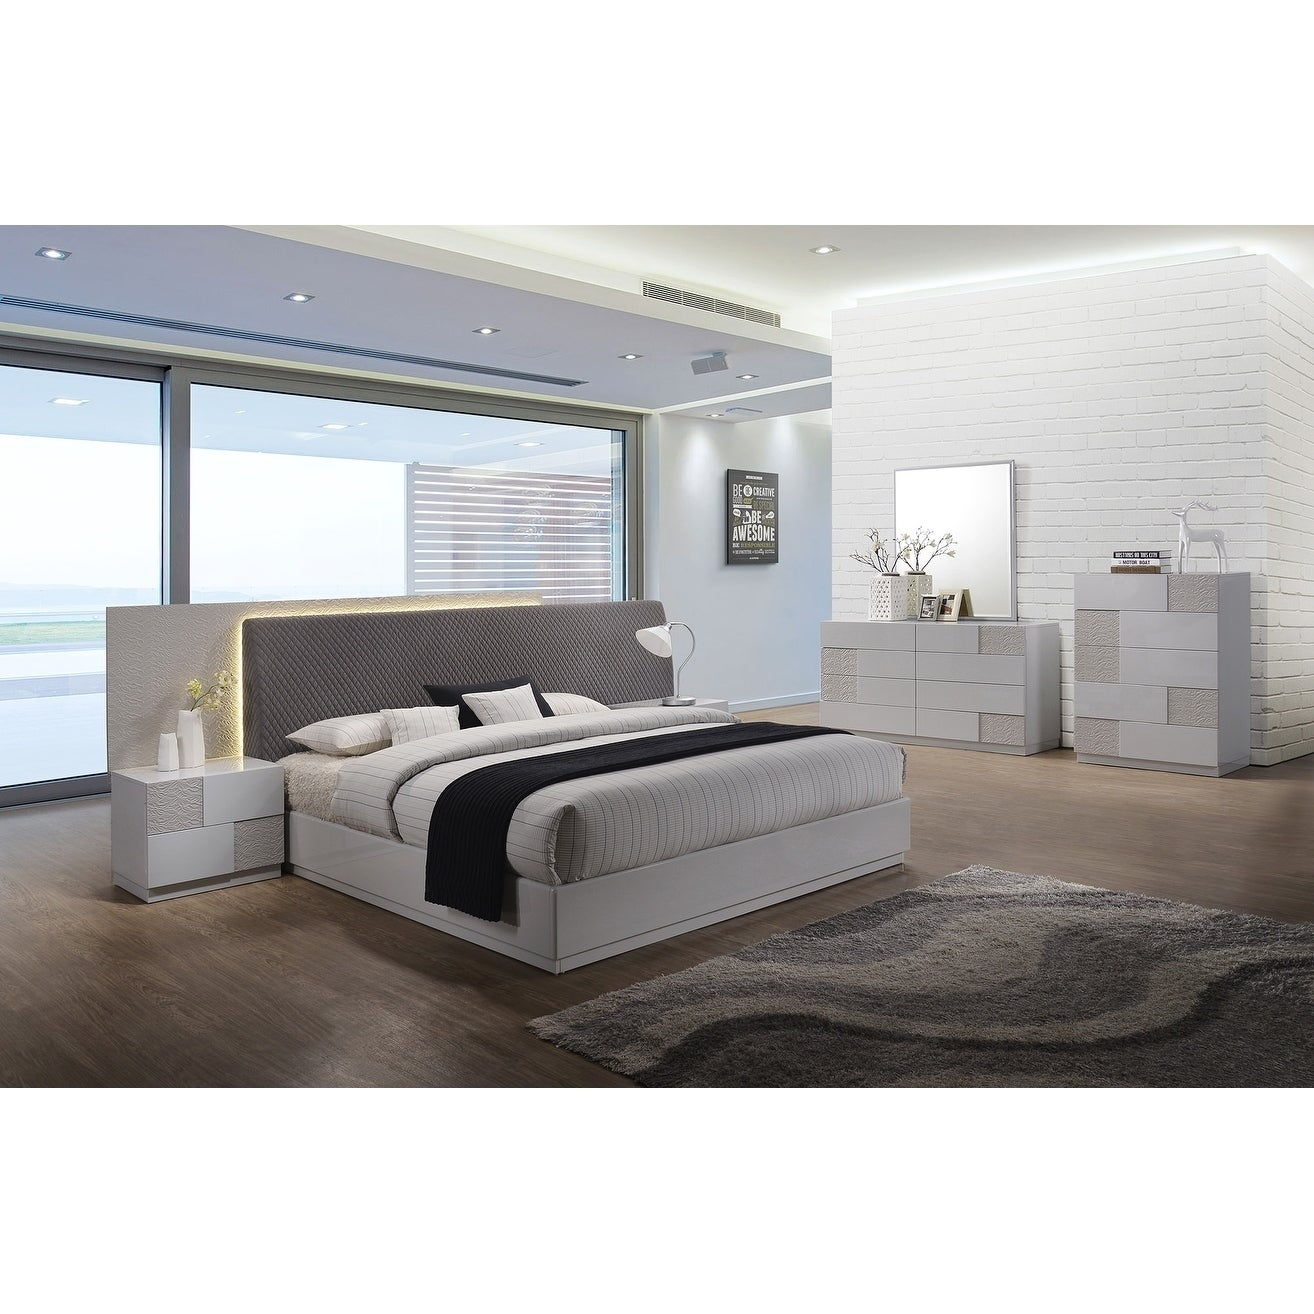 furniture pieces for bedrooms. Oliver \u0026 James Dalou 5-piece Bedroom Set - Free Shipping Today Overstock 25436480 Furniture Pieces For Bedrooms